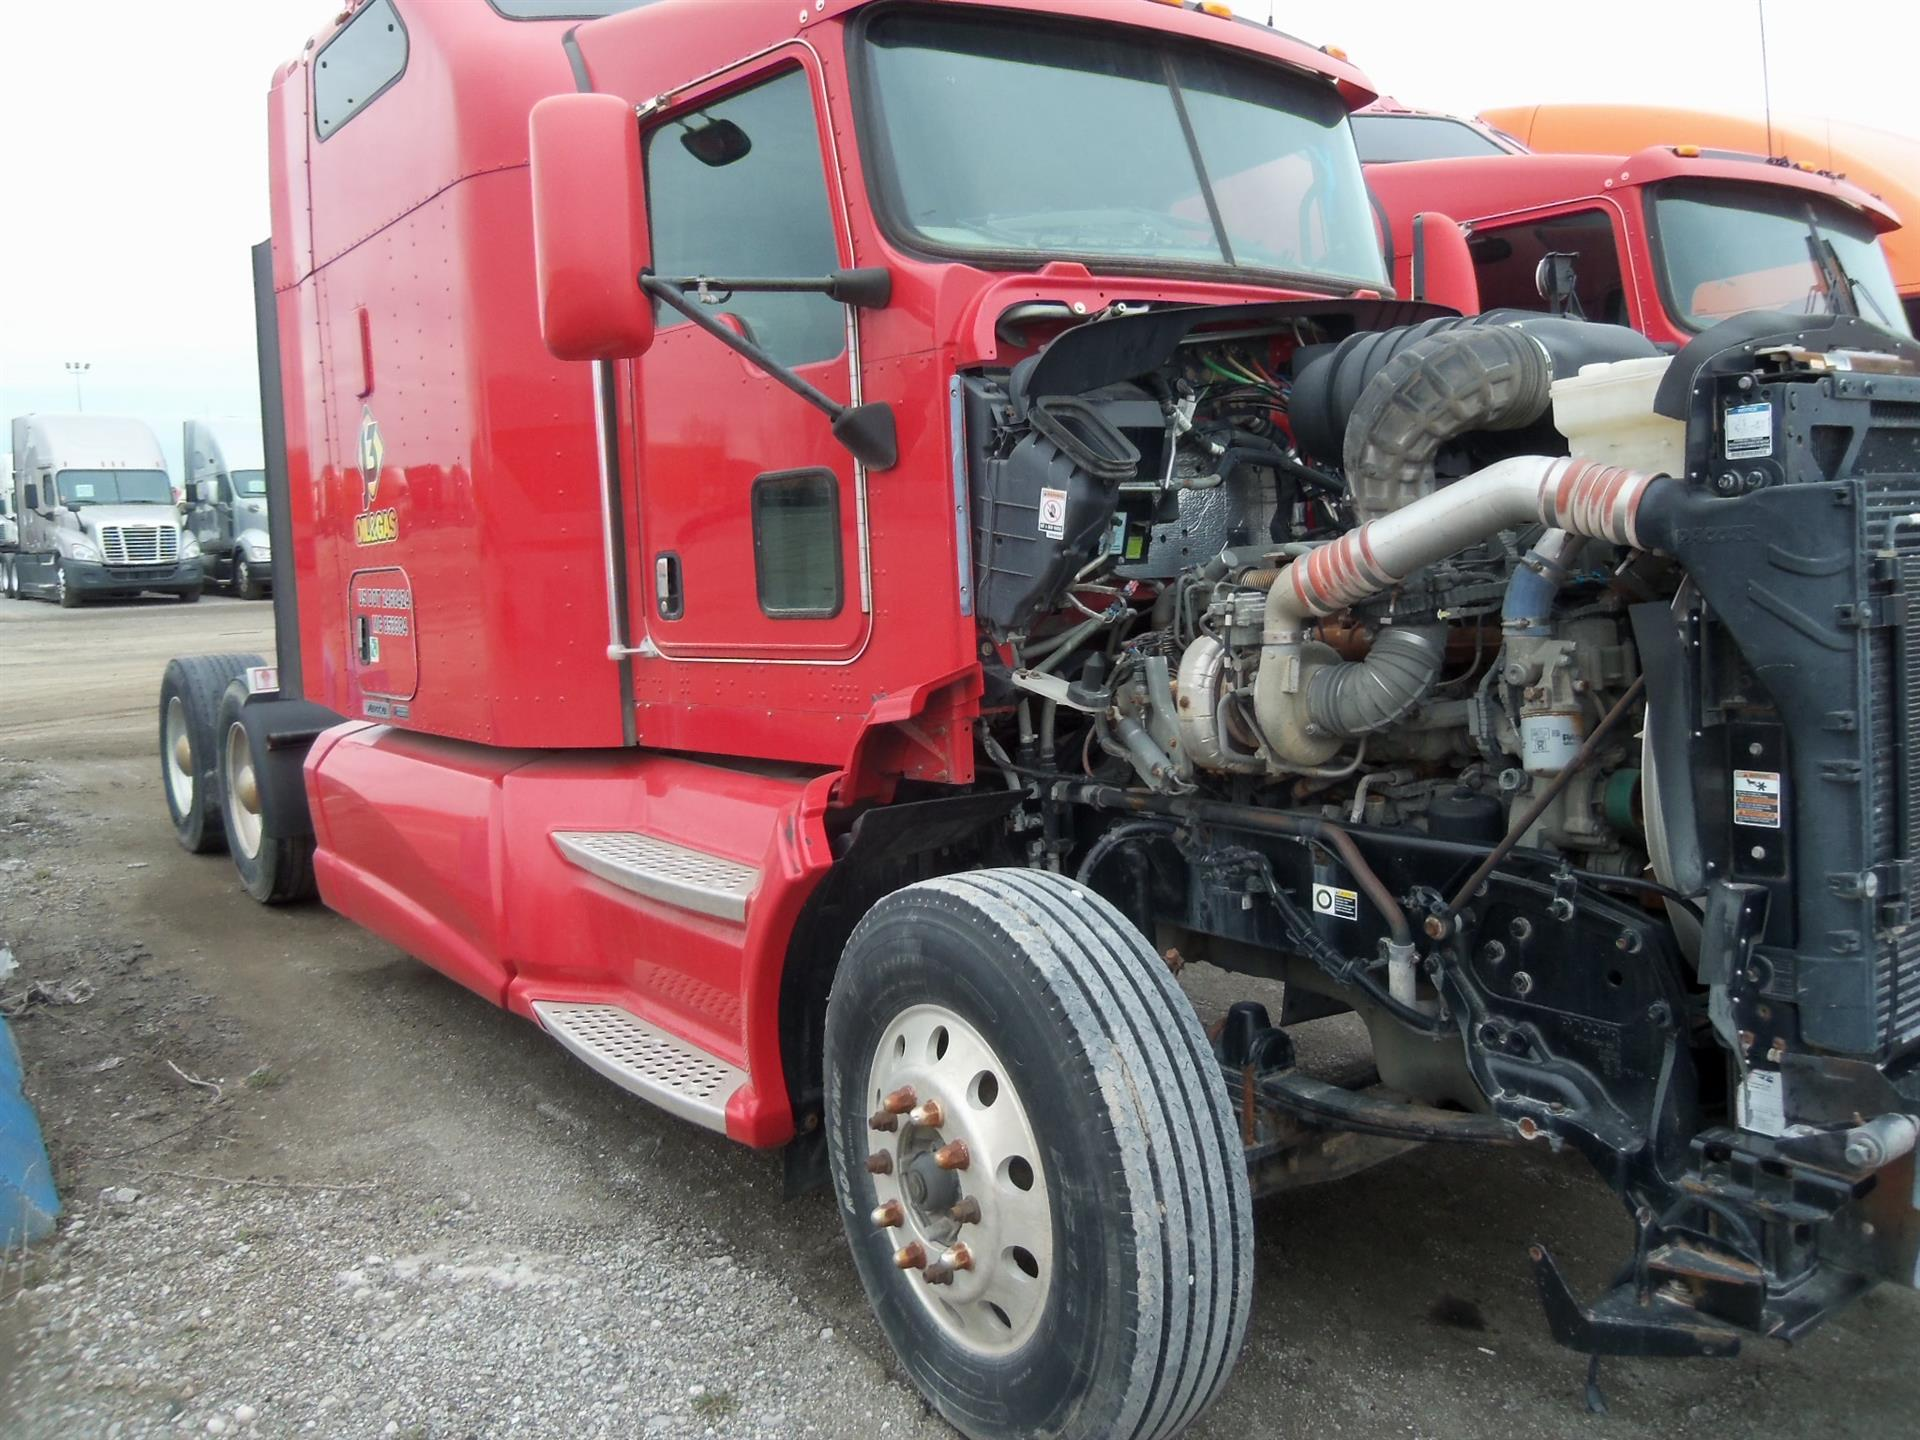 USED 2012 KENWORTH K220 DAYCAB TRUCK #84484